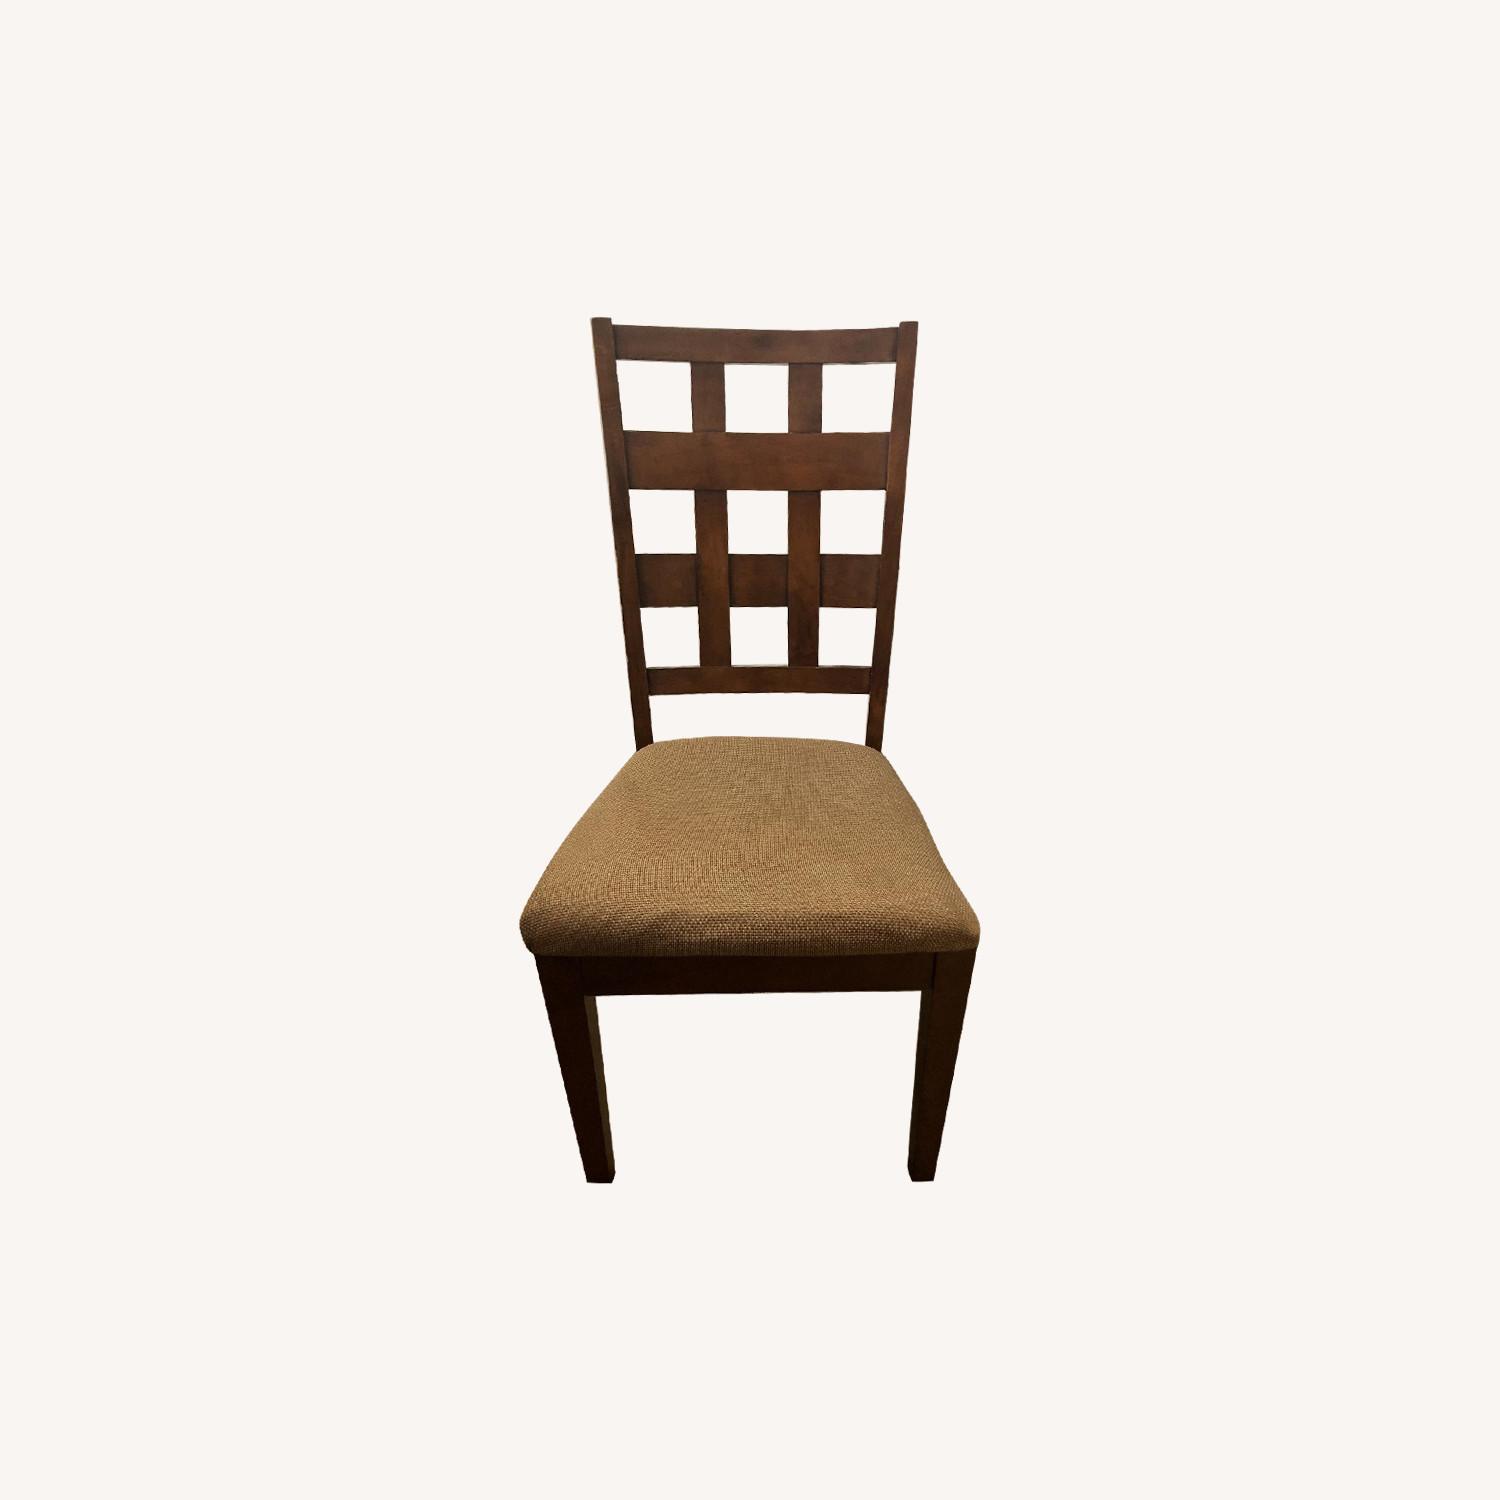 Ashley Wood Dining Chairs - image-0